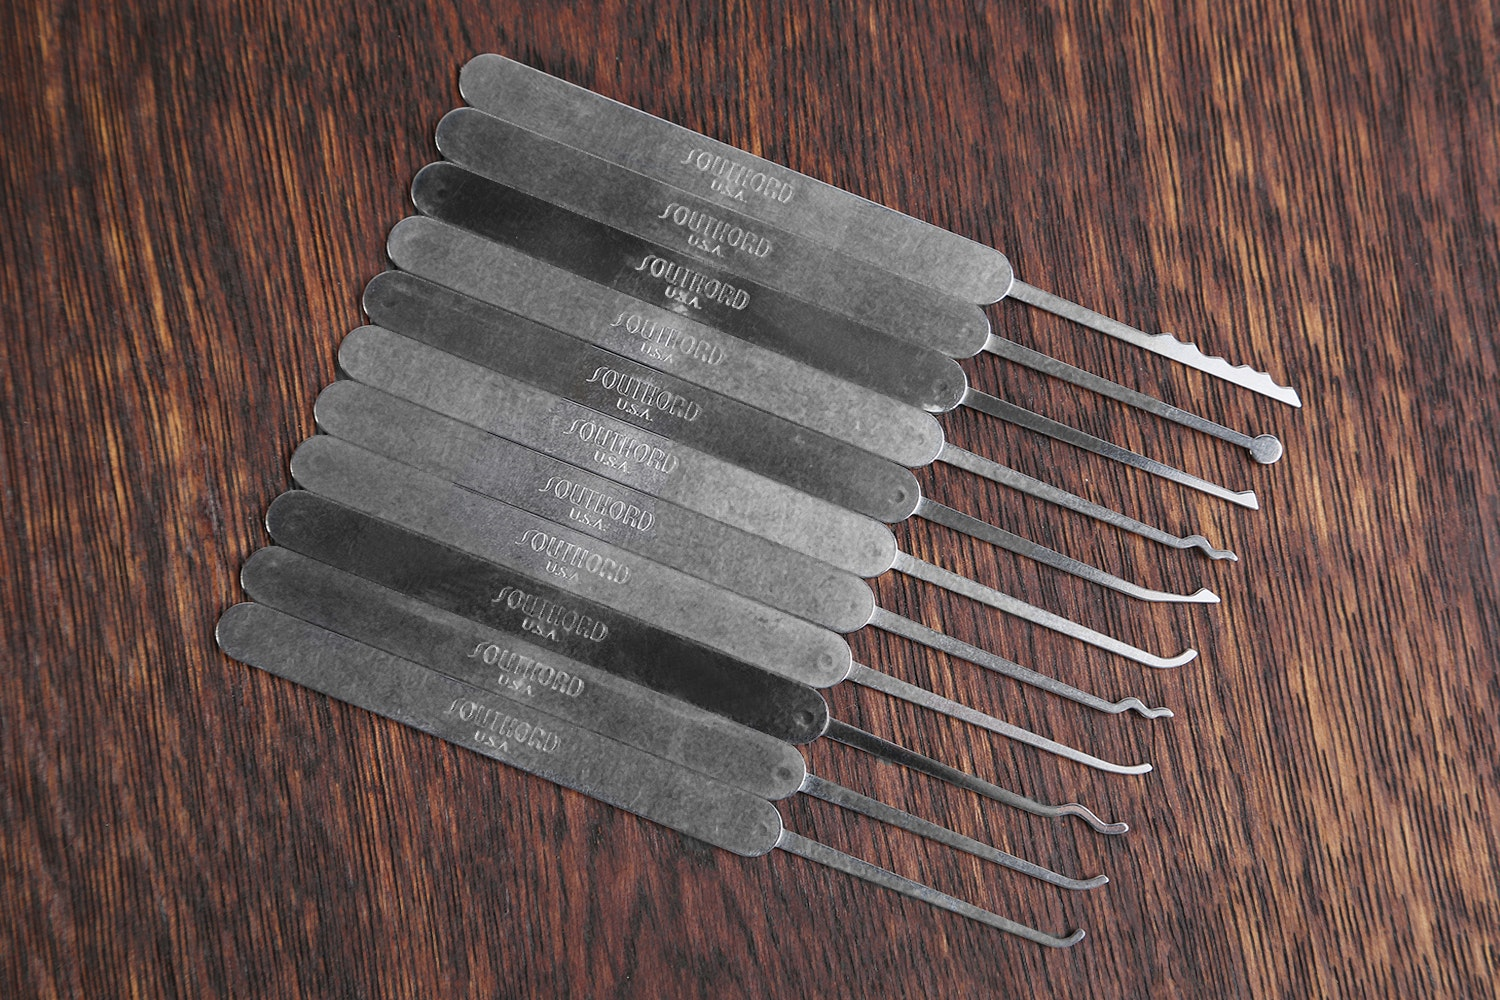 SouthOrd 14/15 Piece Lockpick Sets